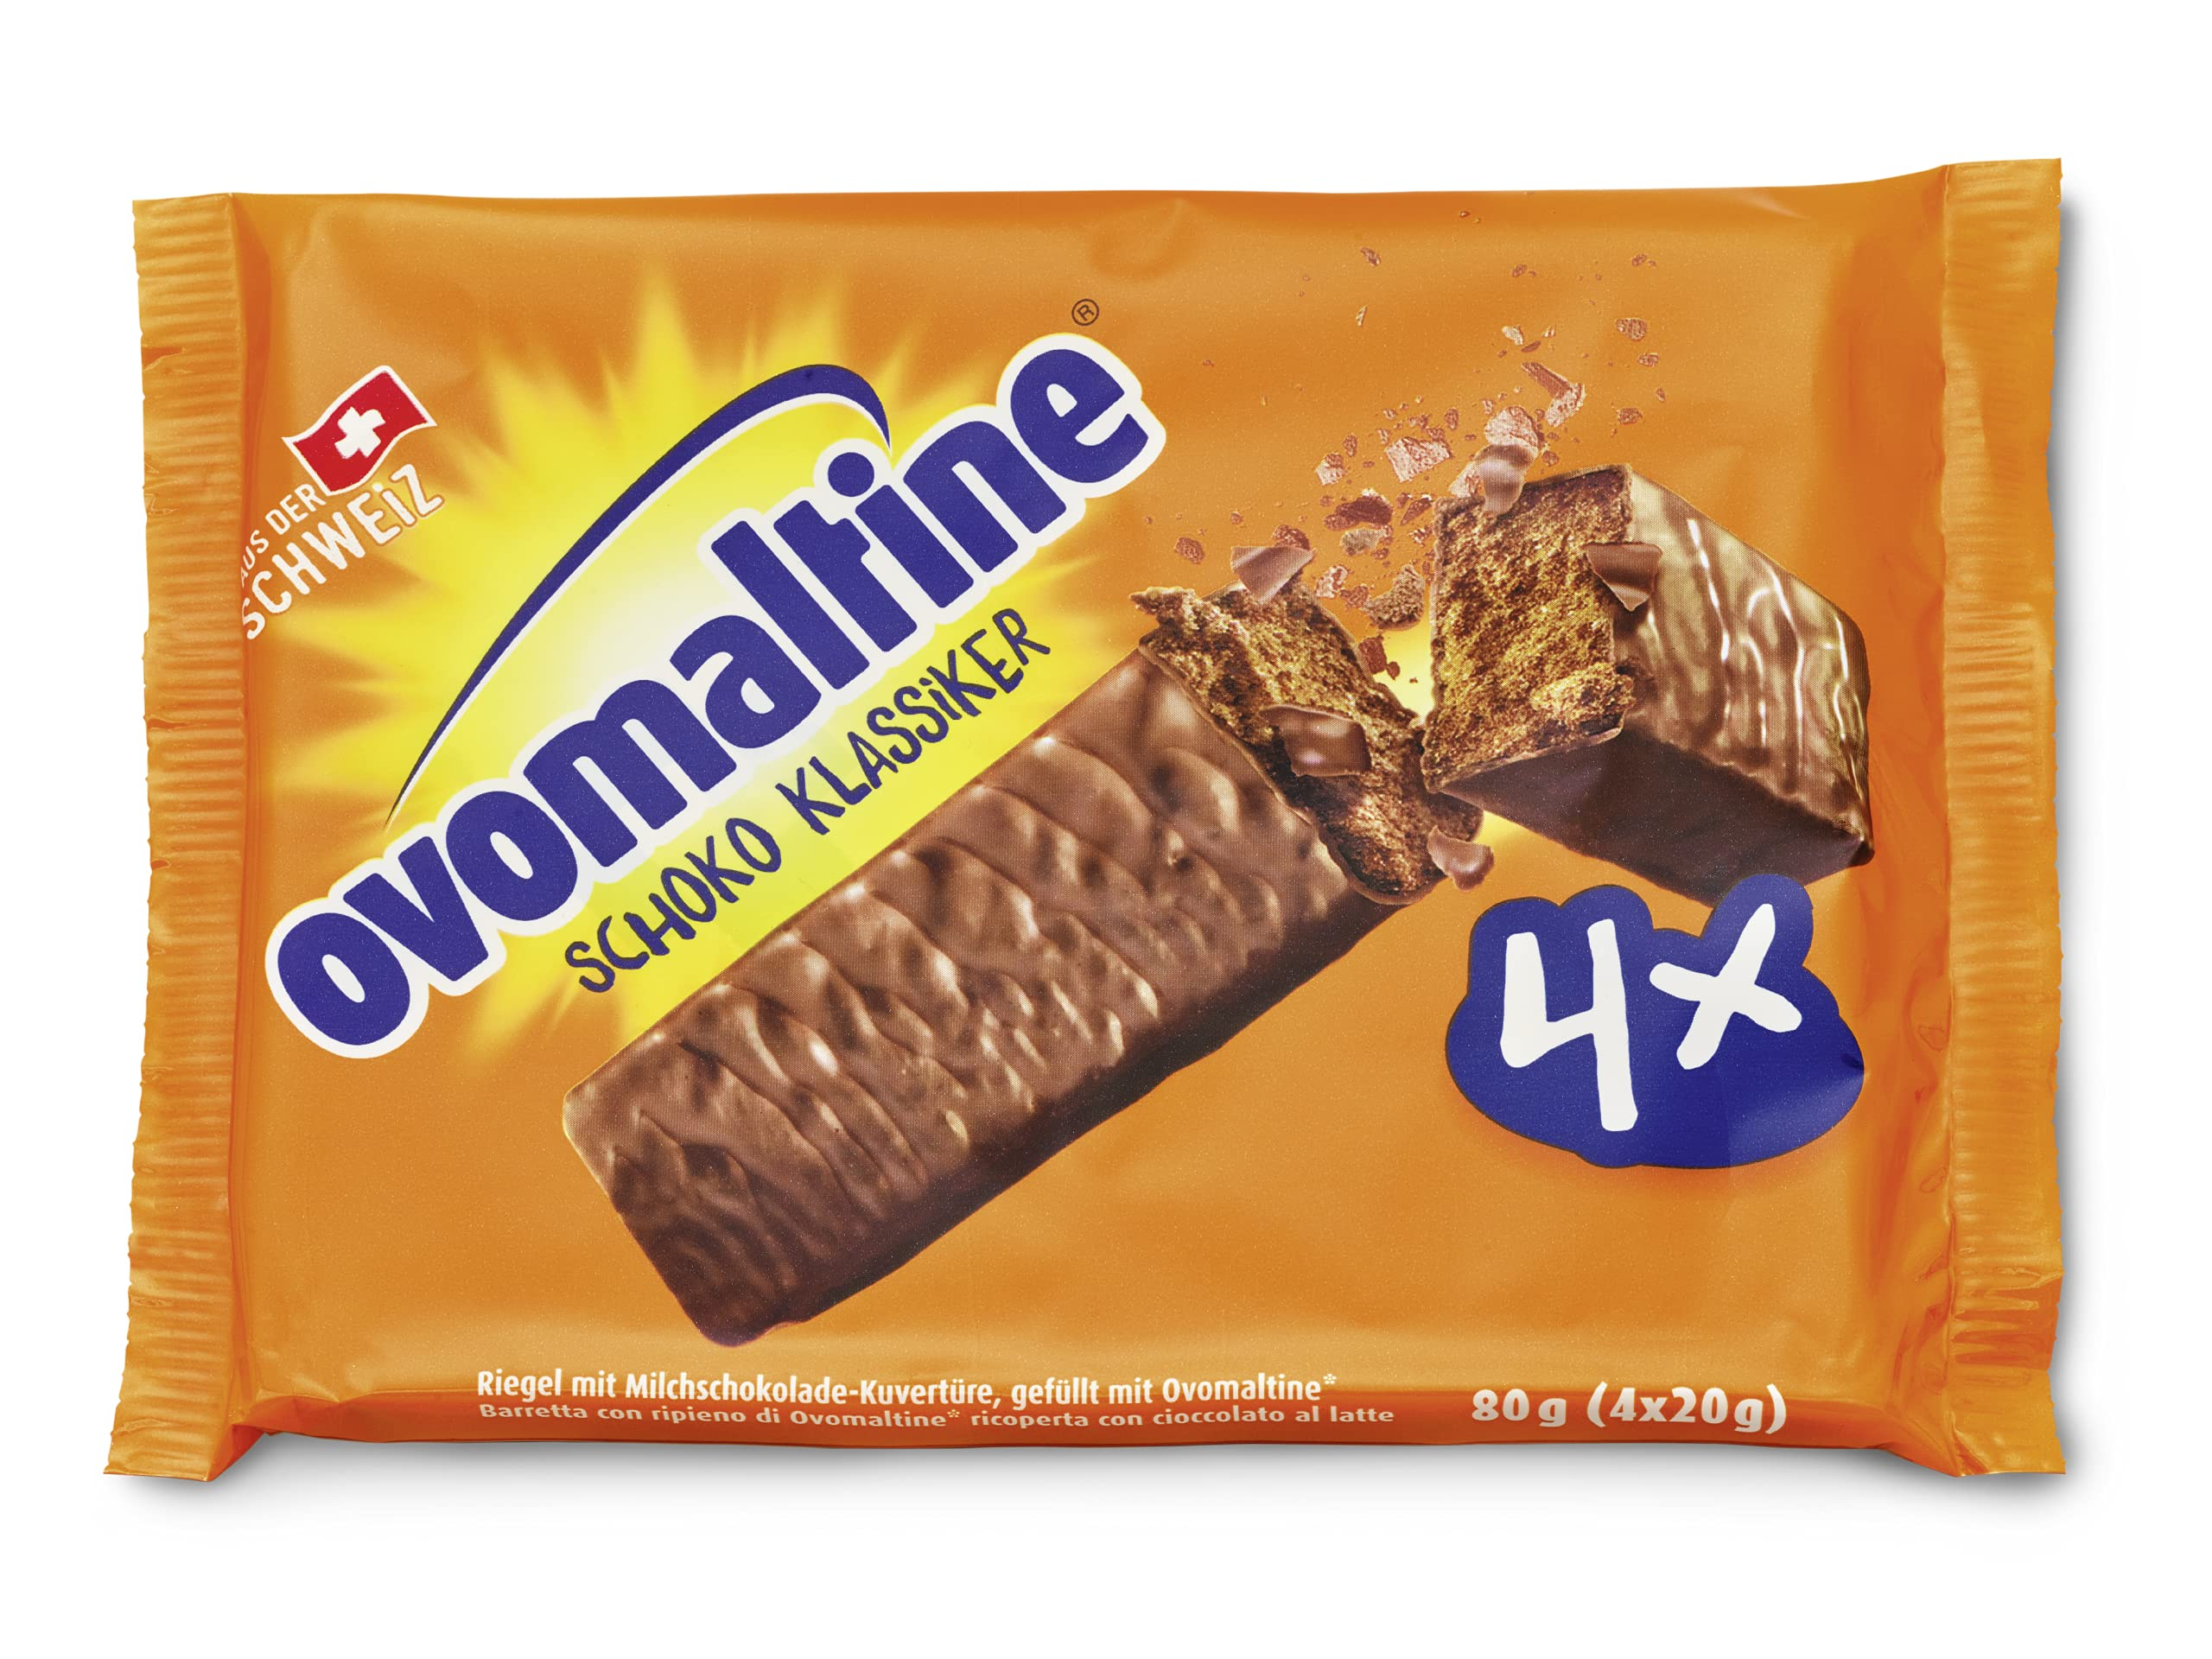 Ovomaltine Chocolate Classic, The Ultimate Bar for Energy and Indulgence, Pack of 1 (4x20g)